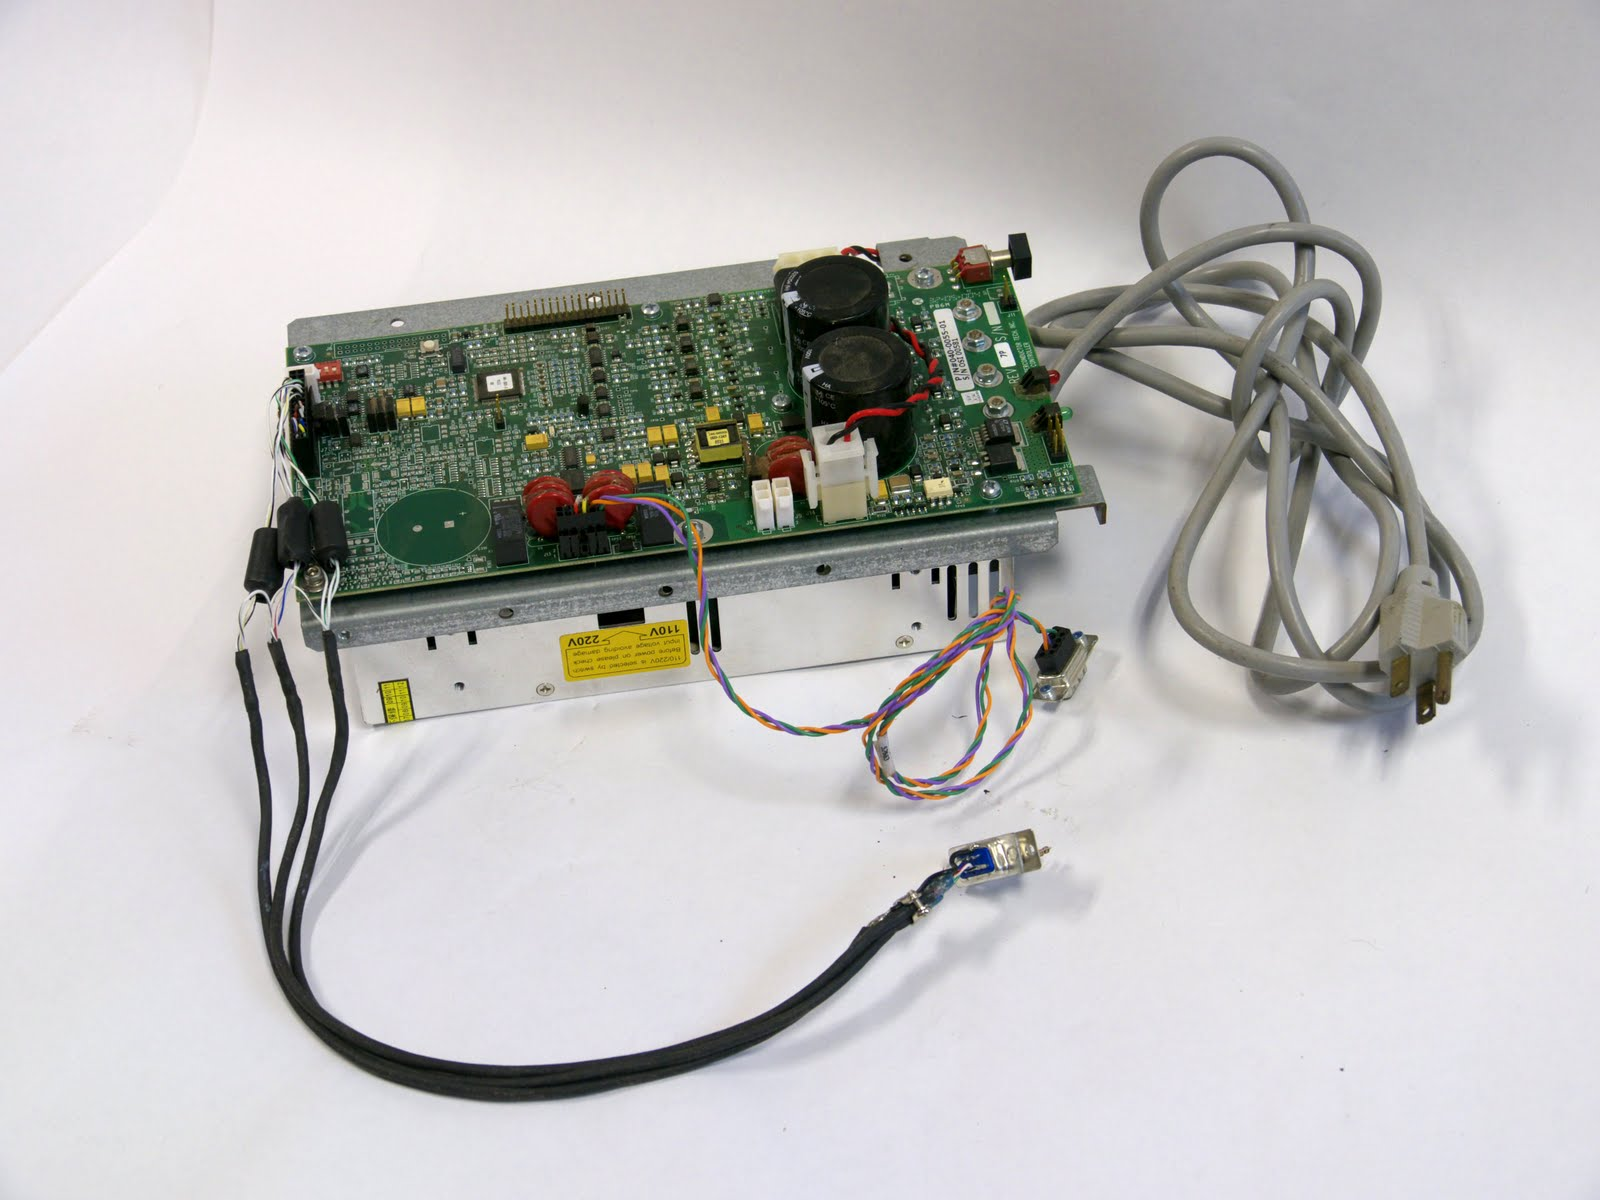 Ben Krasnow Diy Liquid Nitrogen Generator Hacked Gadgets Tech Blog Circuit Board Uv Exposure Box The Original Control From Sti Superfilter Requires 27vdc So I Found A Switching Power Supply Ebay And Use That To